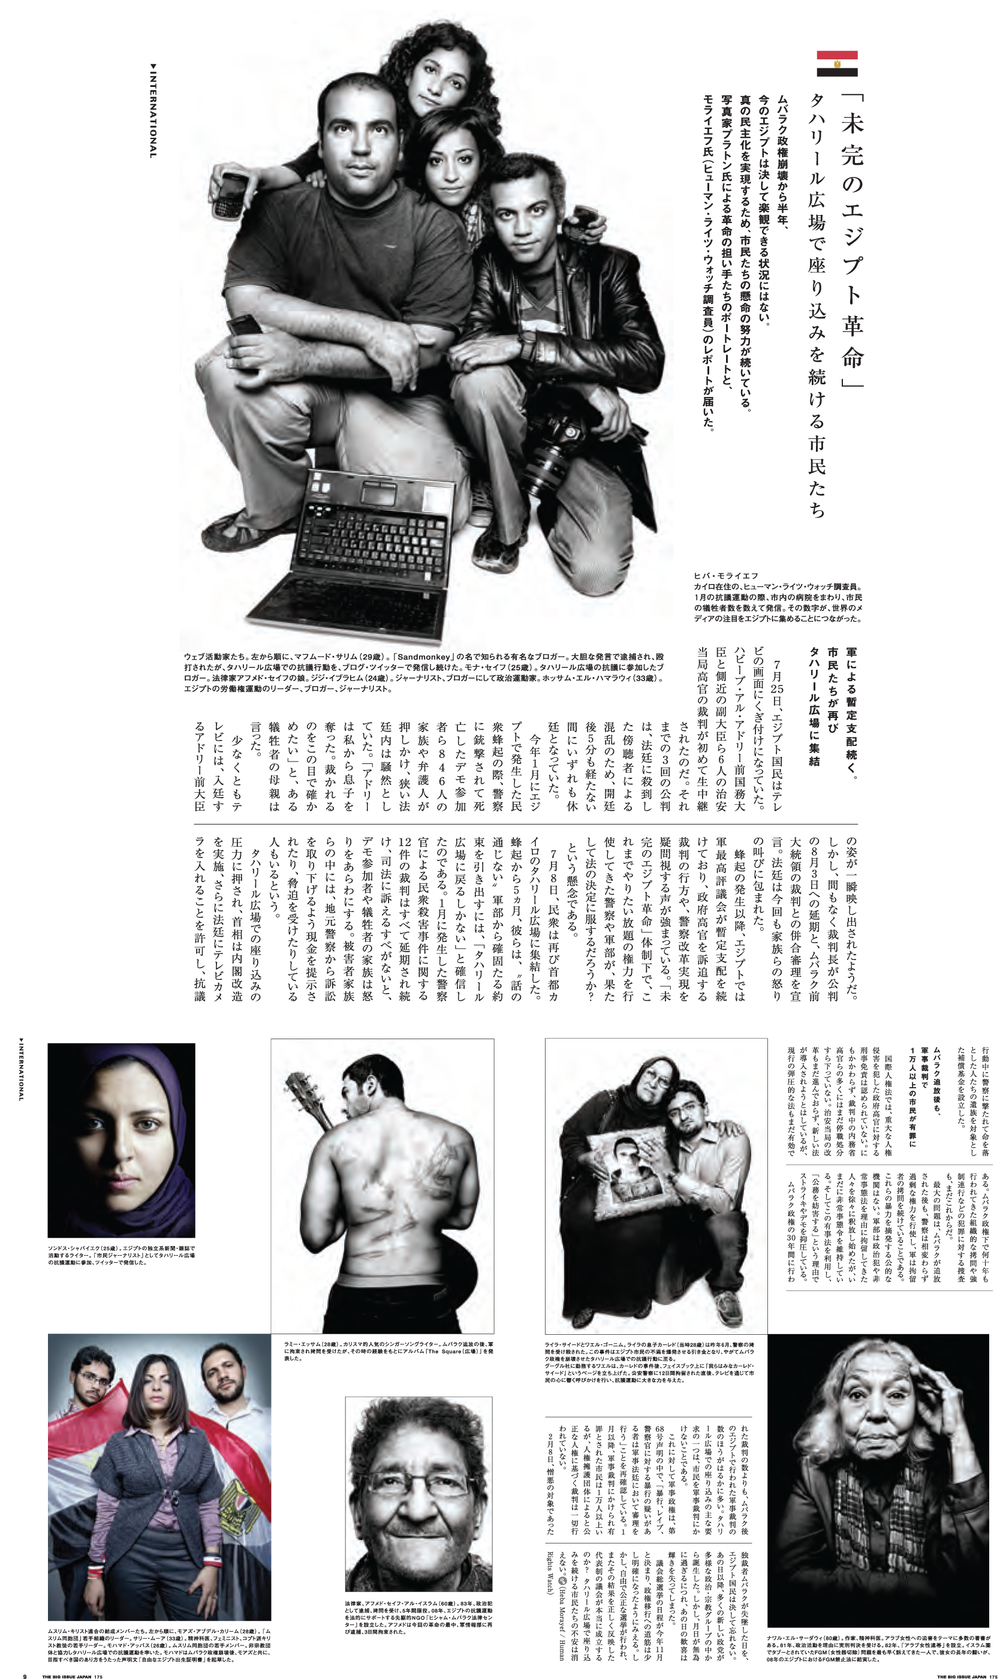 TheBigIssueJapan_Egypt.png